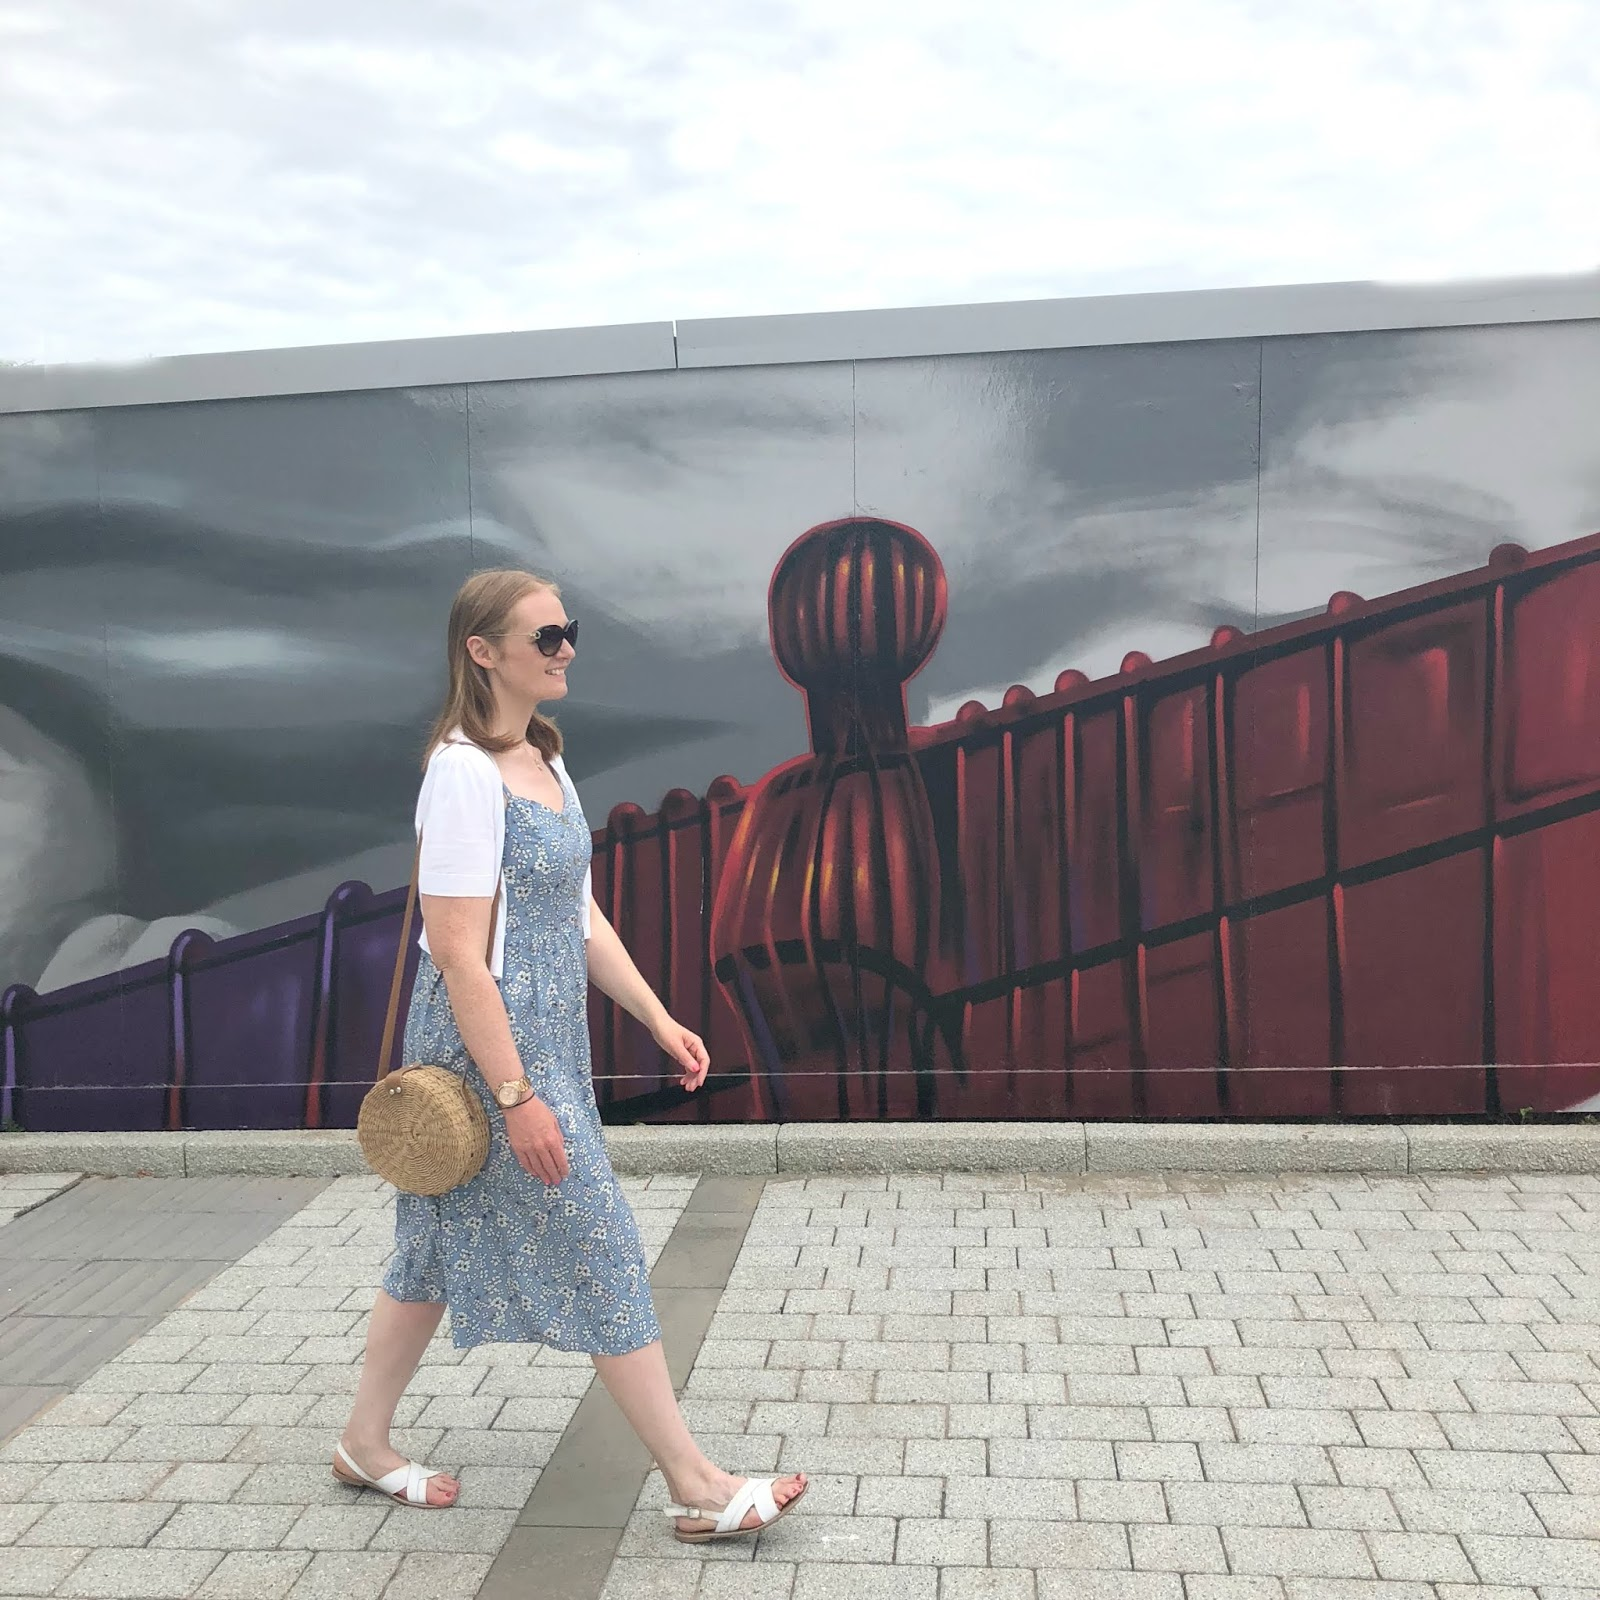 Great Exhibition of the North, Newcastle Gateshead 2018  - What's On and Where to Go